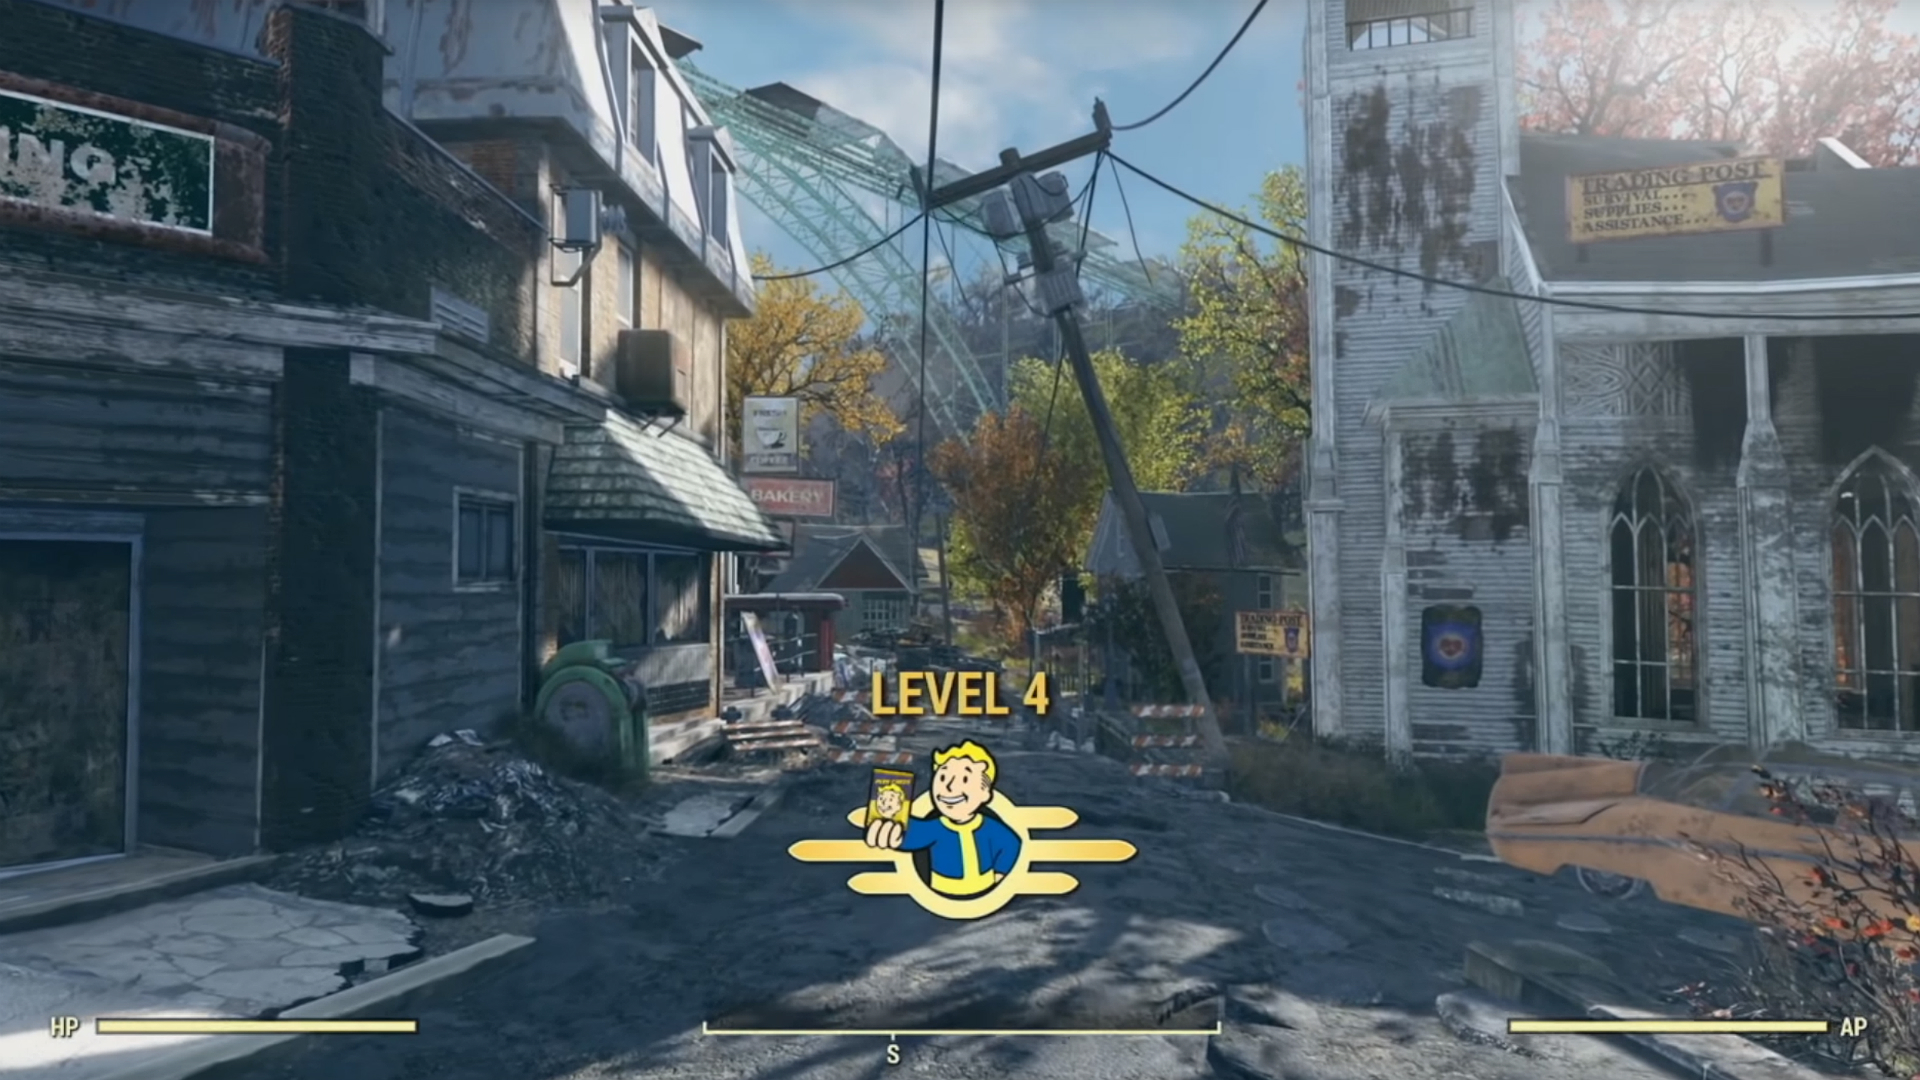 Fallout 76 perk cards: all cards revealed so far and new